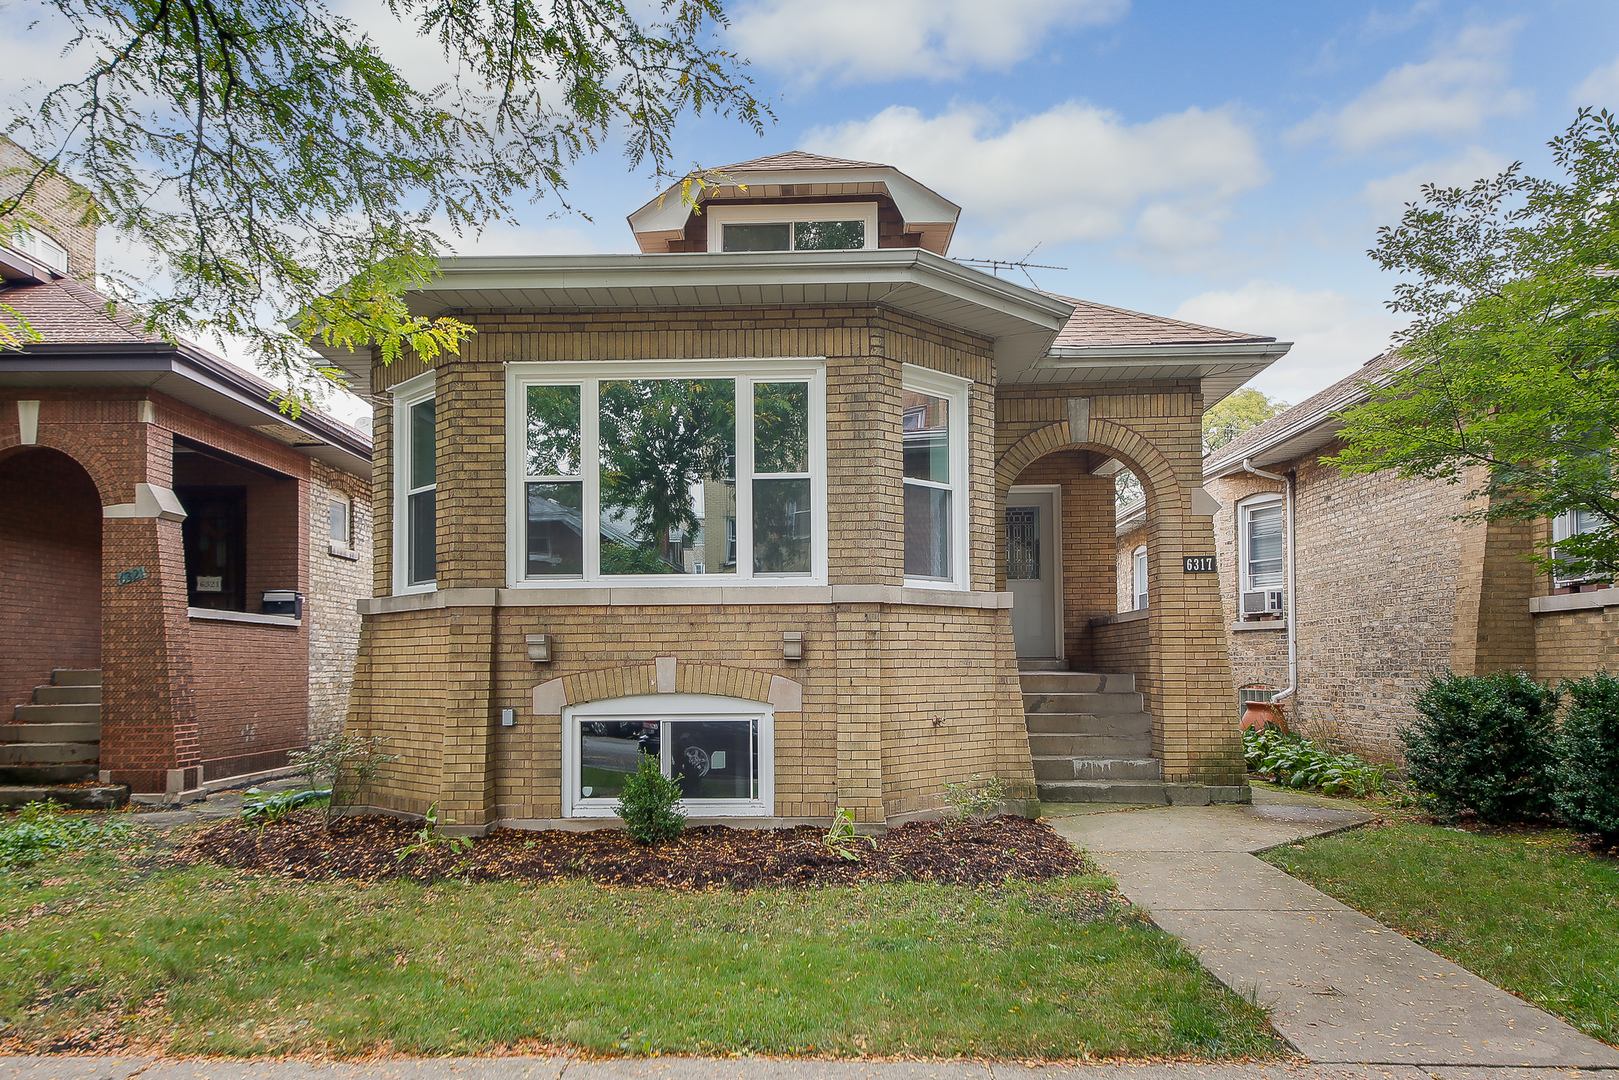 6317 NORTH ROCKWELL STREET, CHICAGO, IL 60659